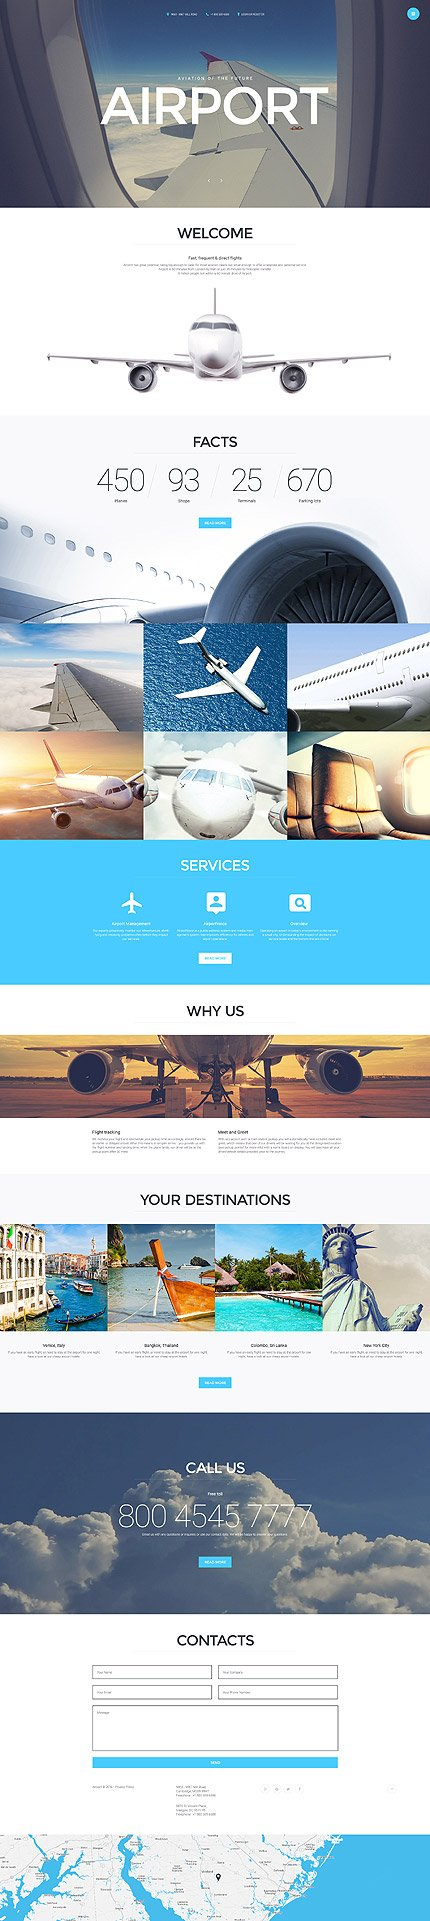 Joomla Theme/Template 57652 Main Page Screenshot